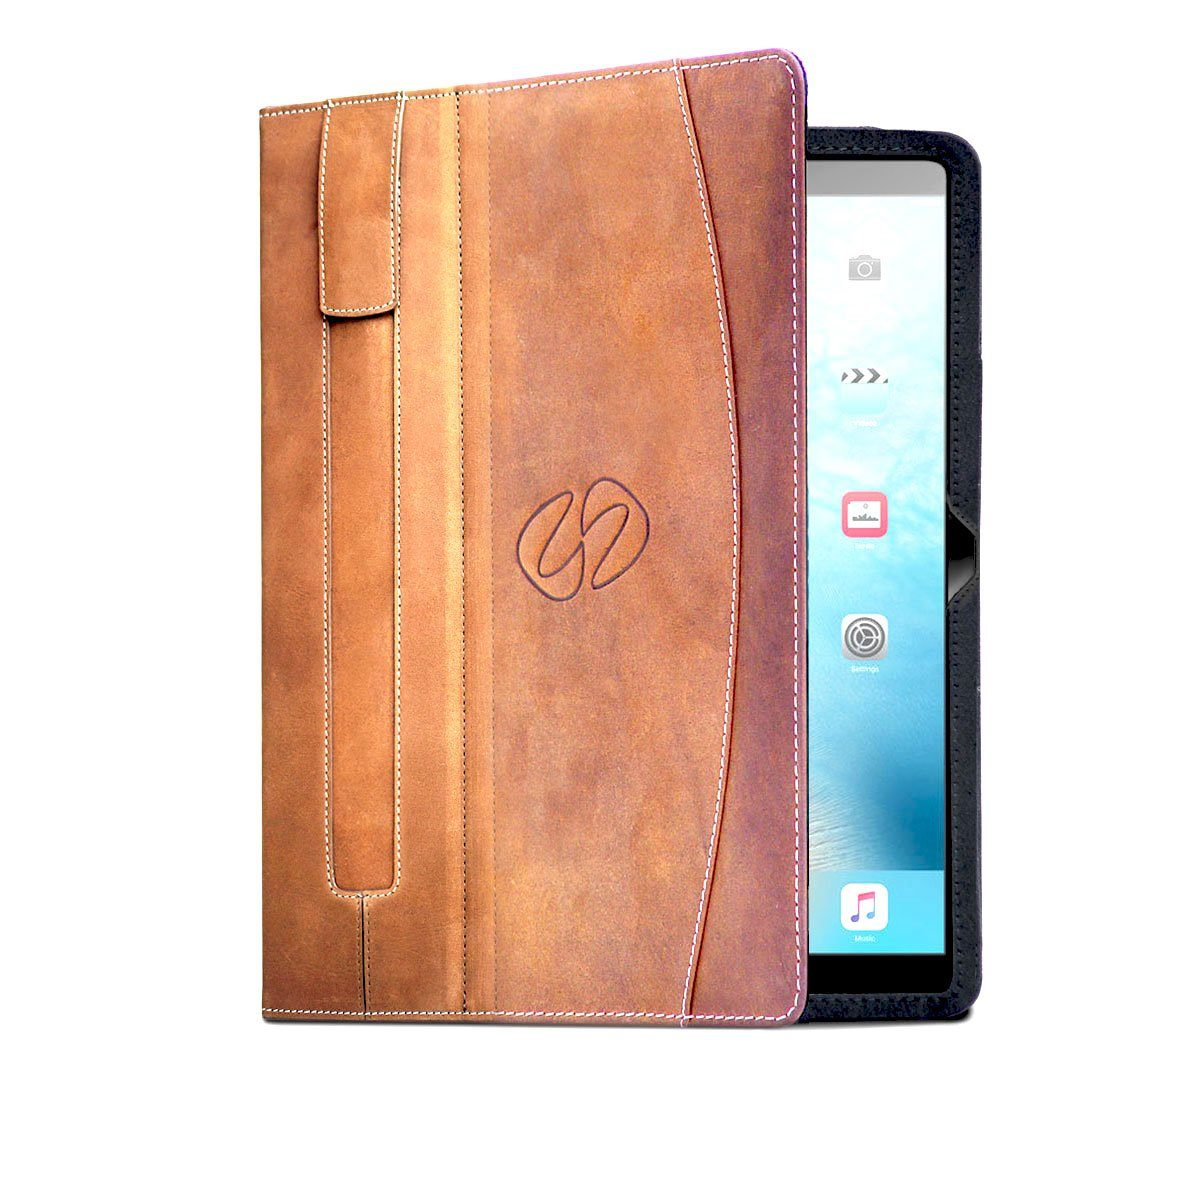 f6a43464760 Swatch-Vintage The MacCase Premium leather iPad 9.7 case